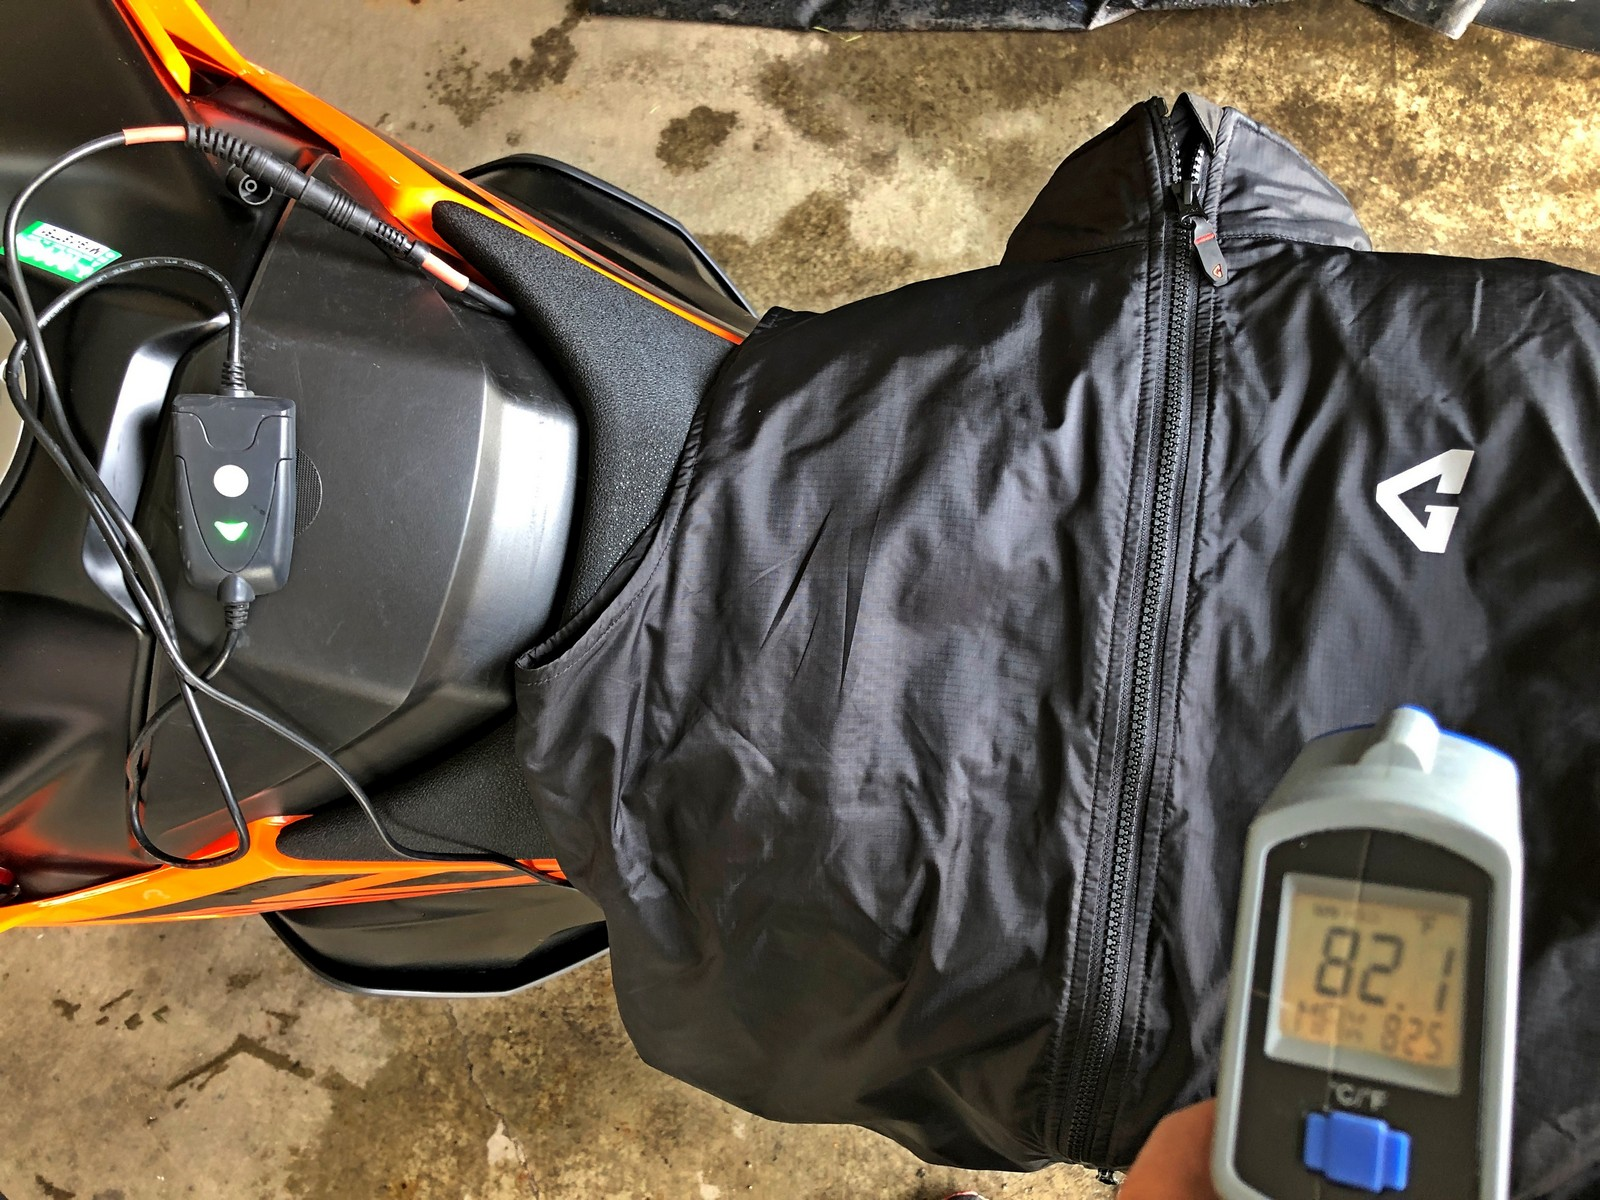 Gerbing Vest heated to 82.1 degrees F